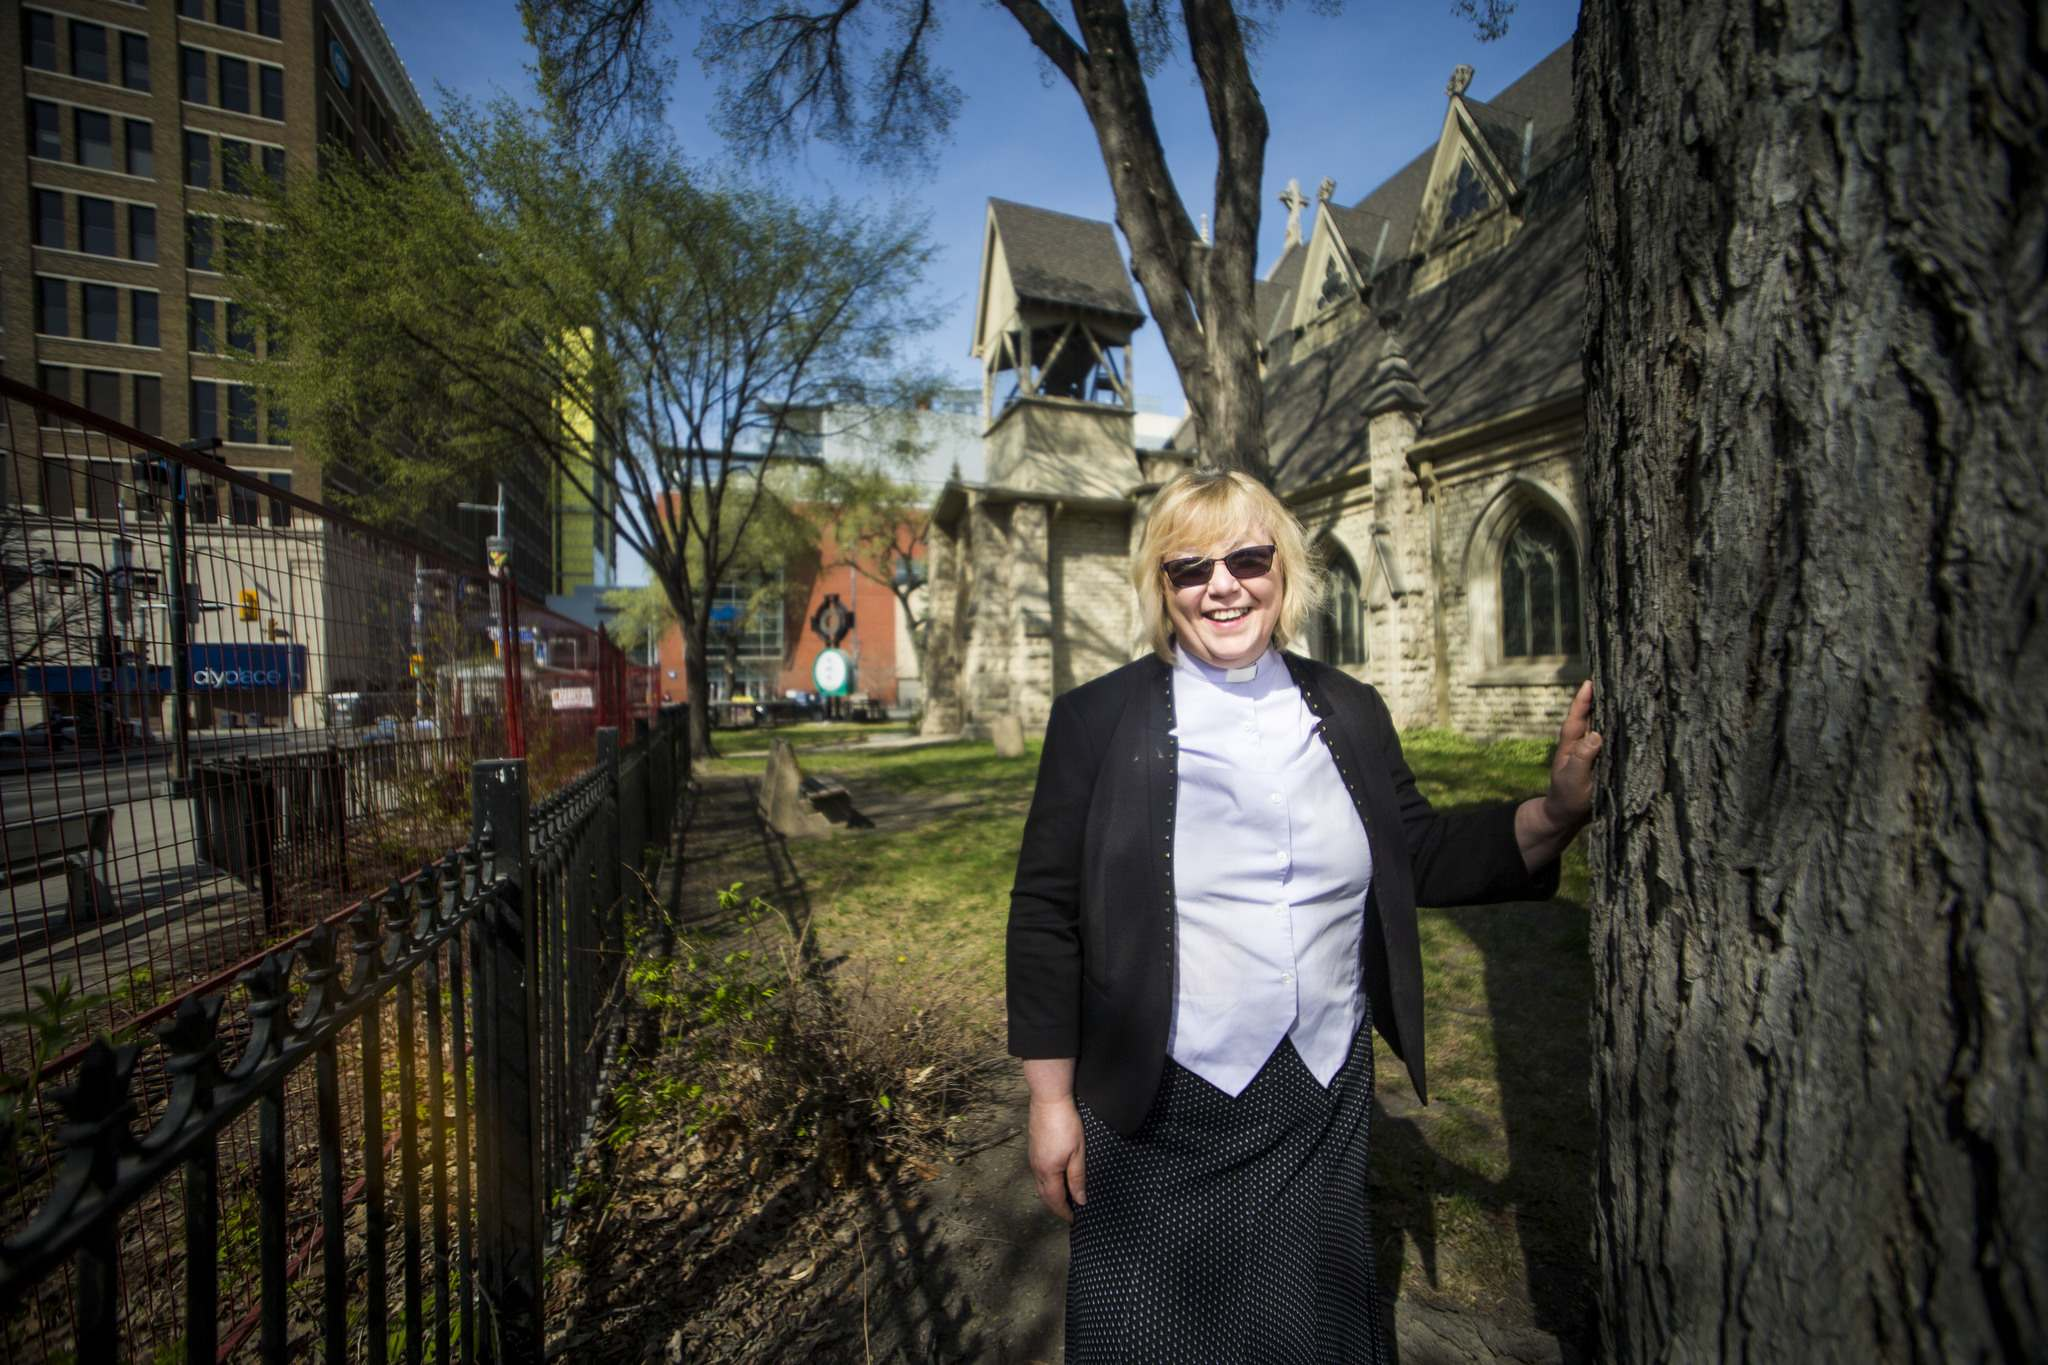 MIKAELA MACKENZIE / WINNIPEG FREE PRESS</p><p>The first pop-up potty location will be by Holy Trinity Anglican Church. Rev. Enid Pow: 'I don't know how to put this delicately, but when people have to go they have to go'</p>